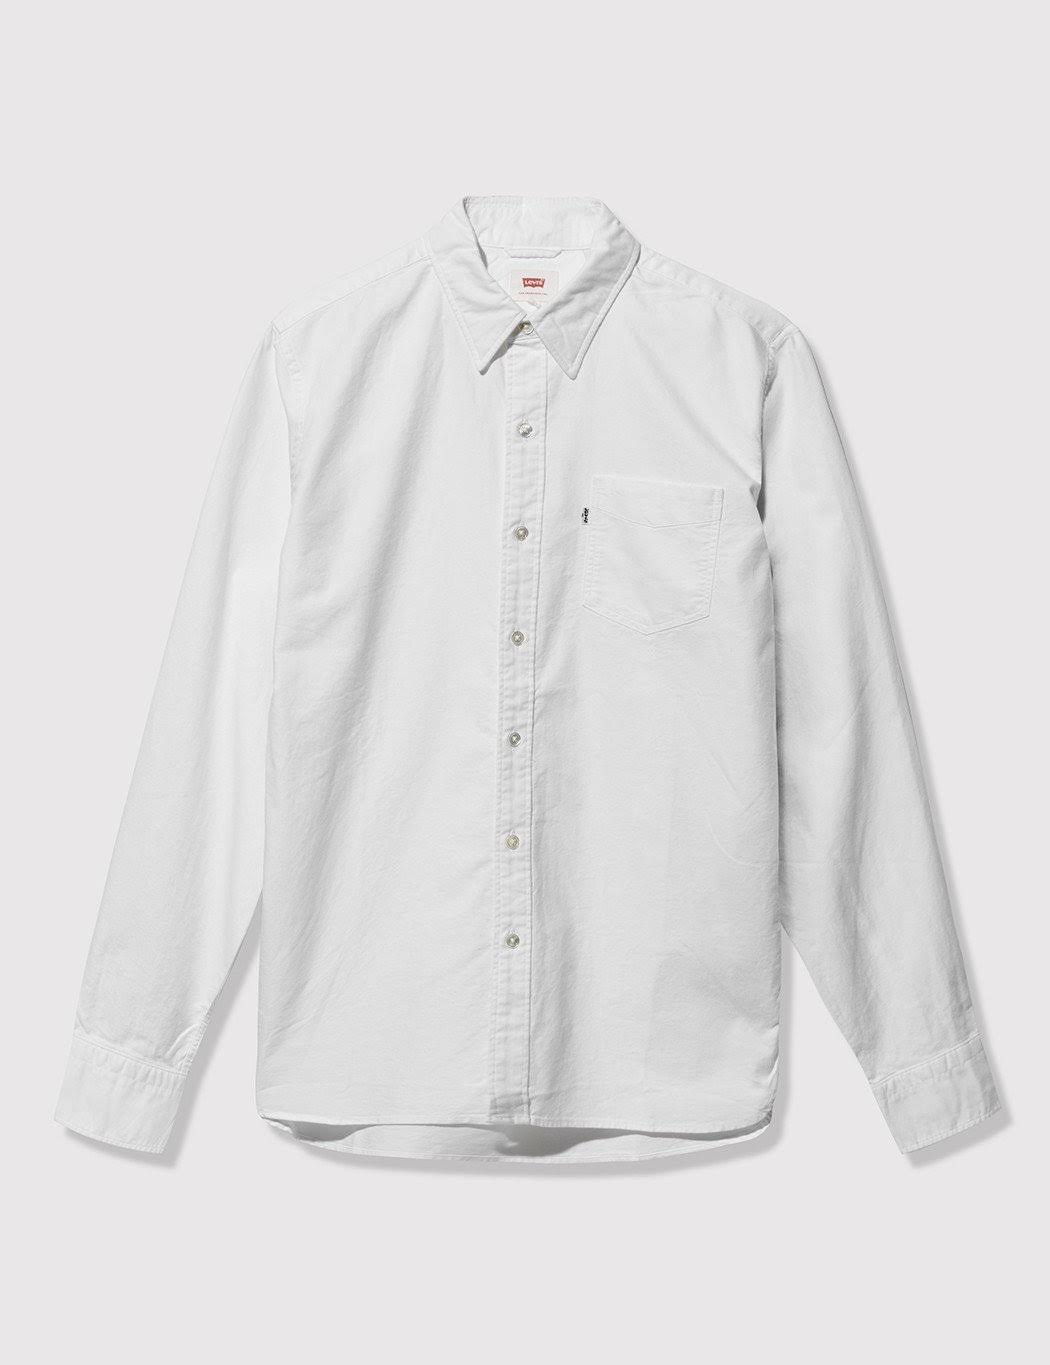 Shirt Blanco Pocket Levis One Sunset 6cgUwWWtOq